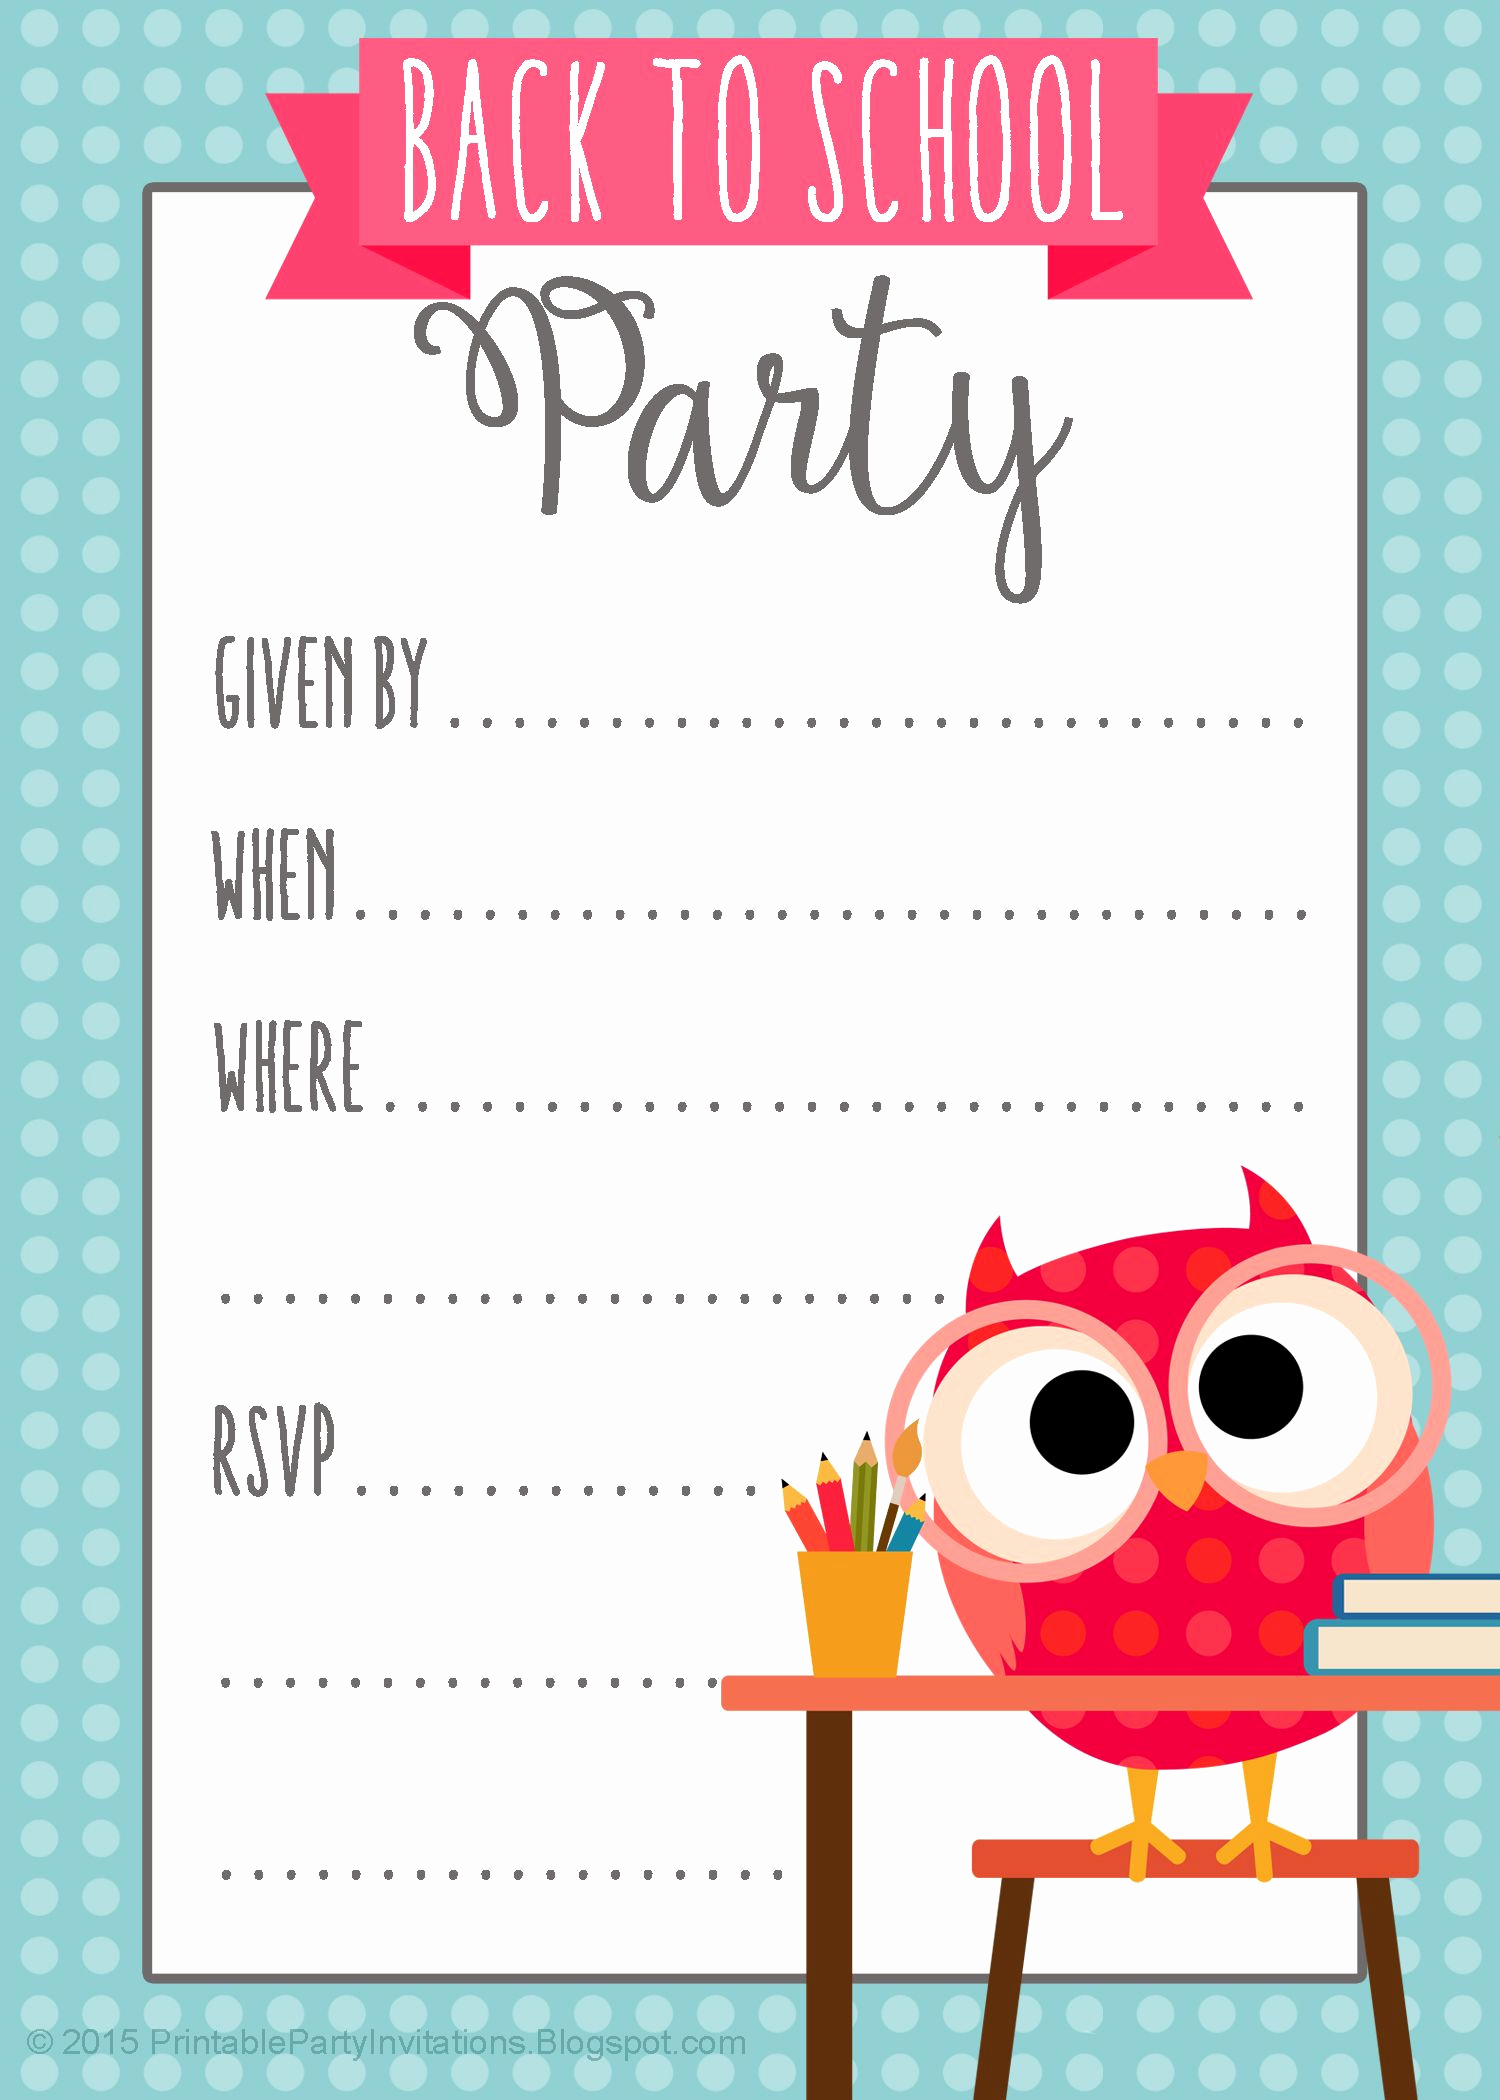 Back to School Night Invitation Unique Free Printable Back to School Party Invitation